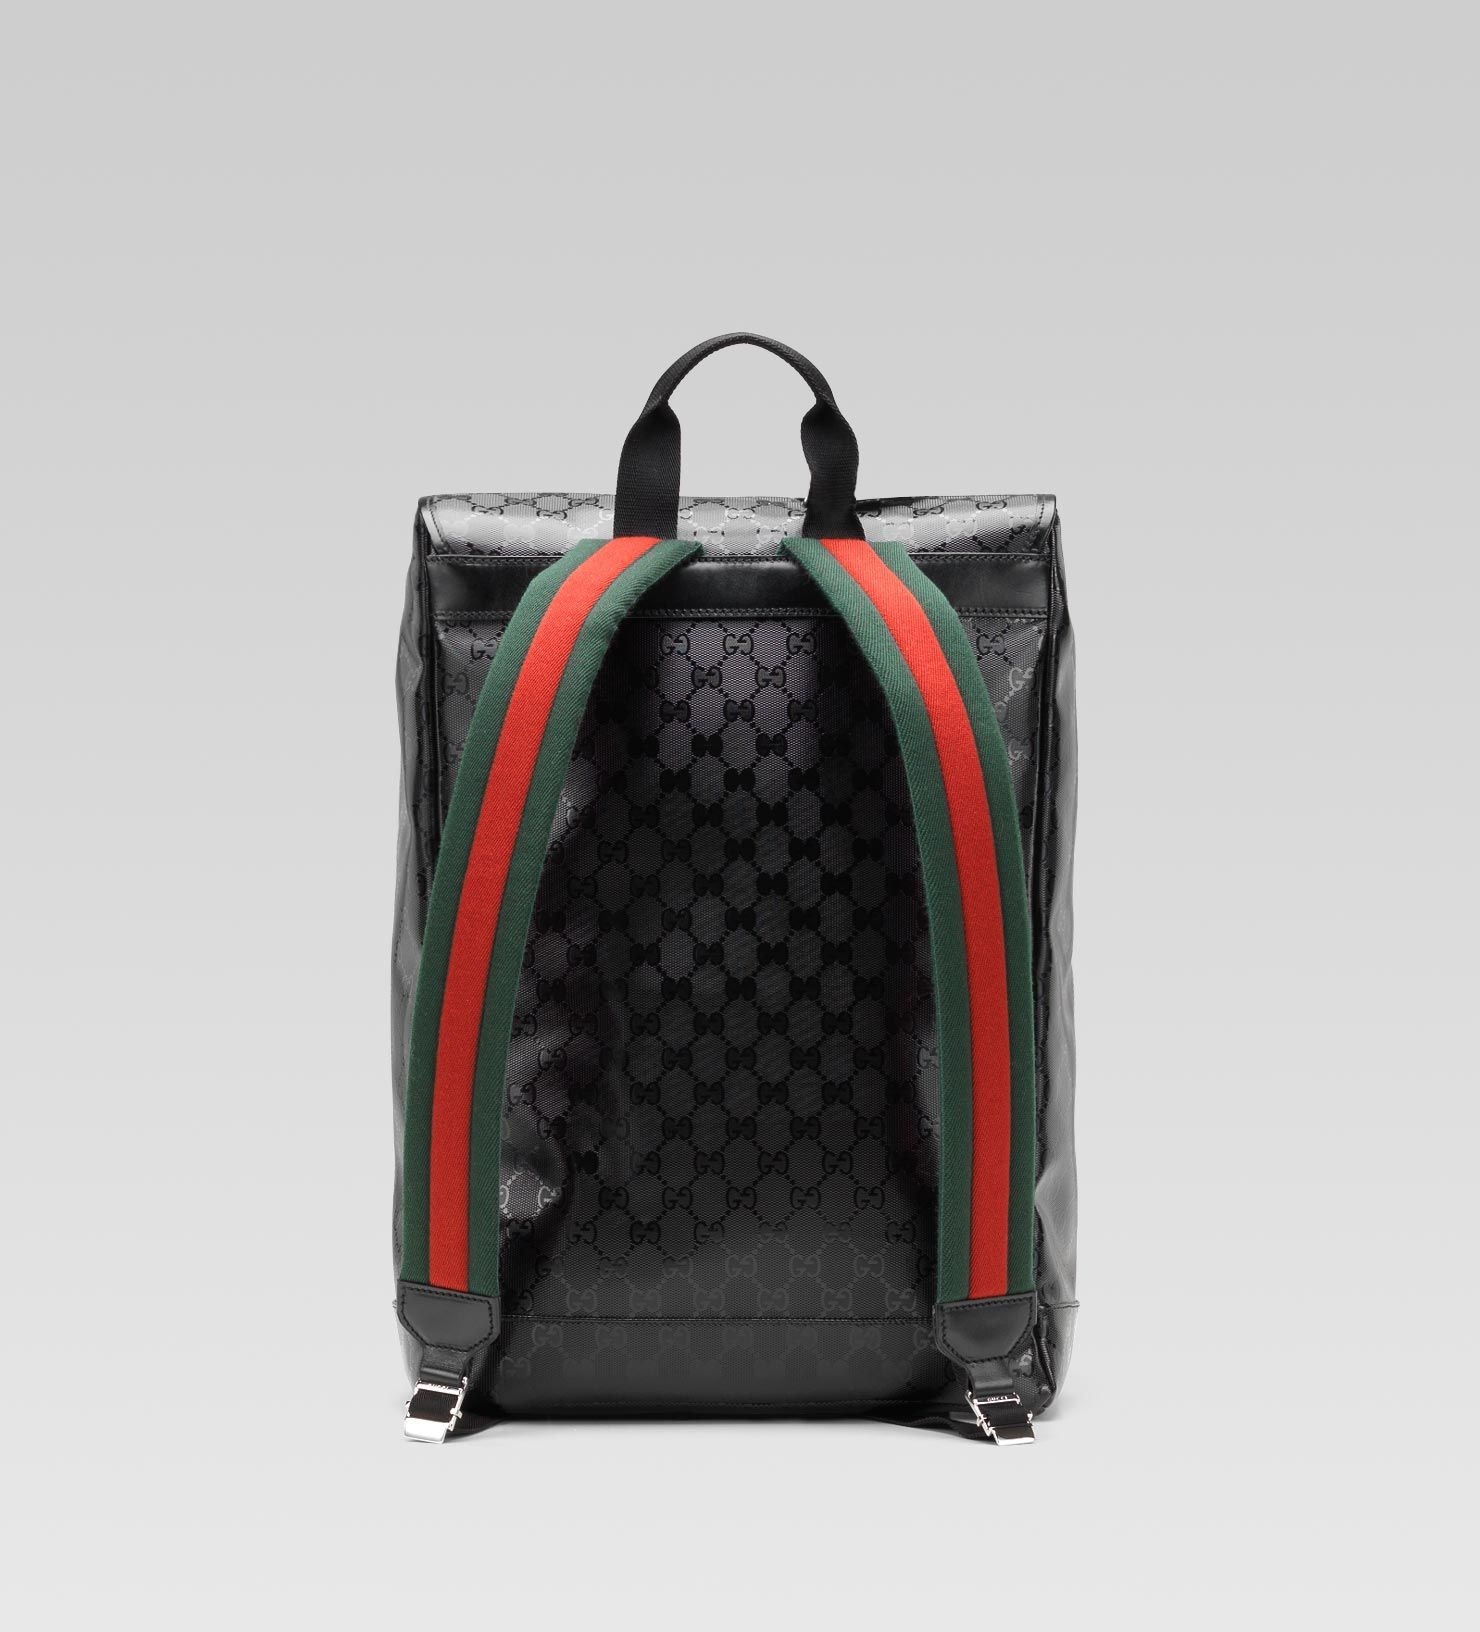 08b13680a25 Gucci - backpack. 269378FOOCN1060